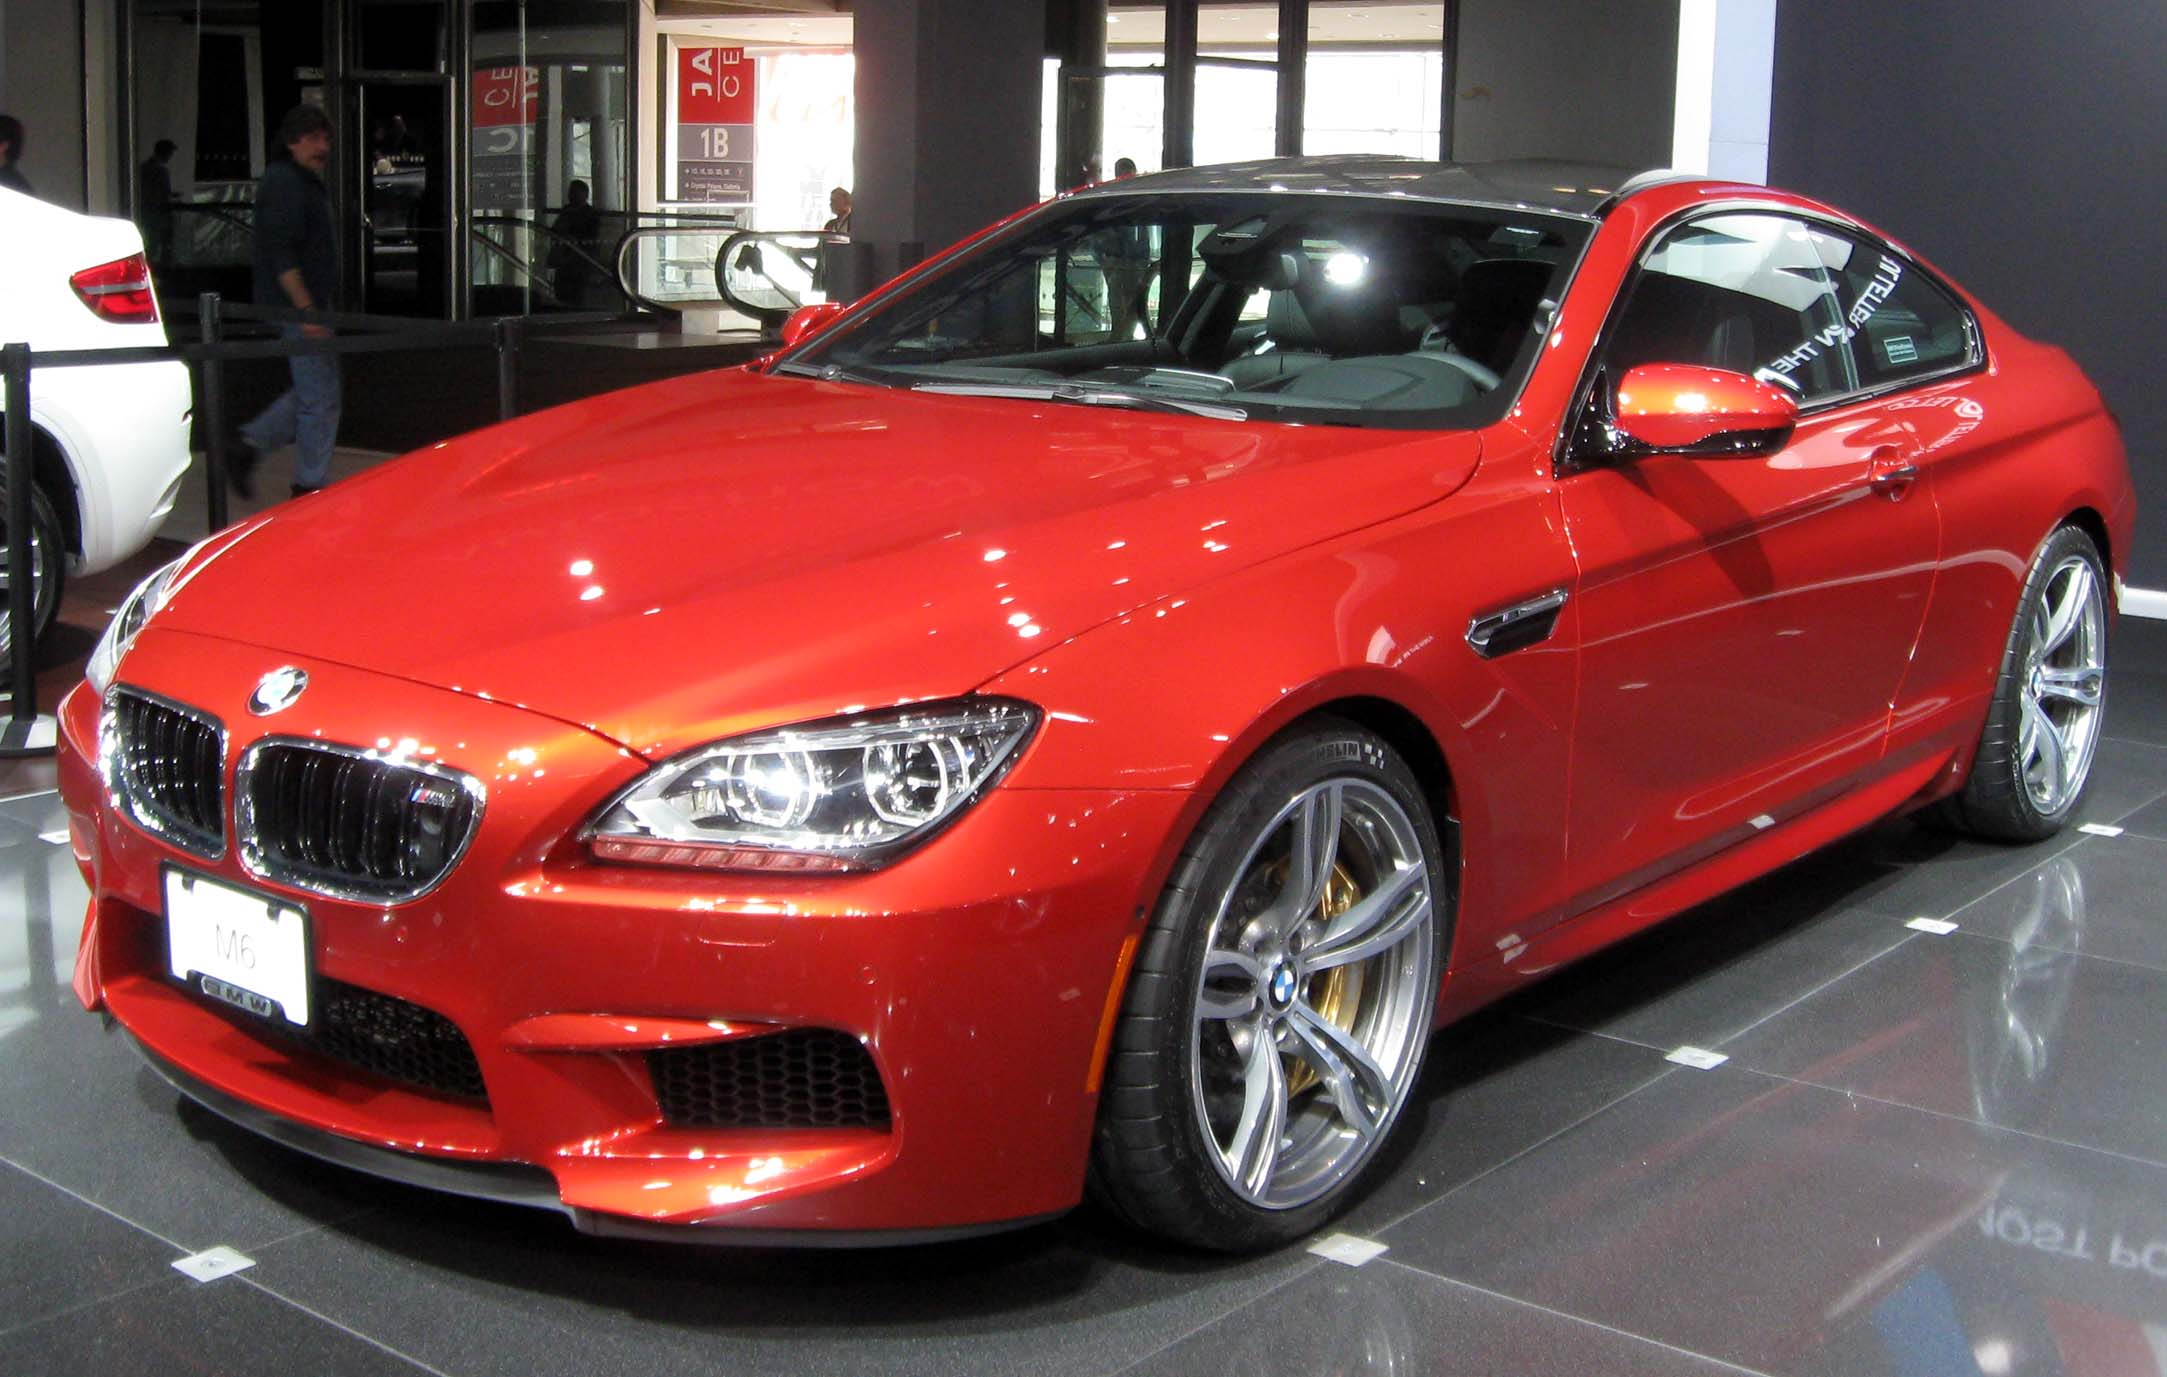 BMW M6 Auto & Car Wallpapers HD | Iphone | Android| Desktop 1